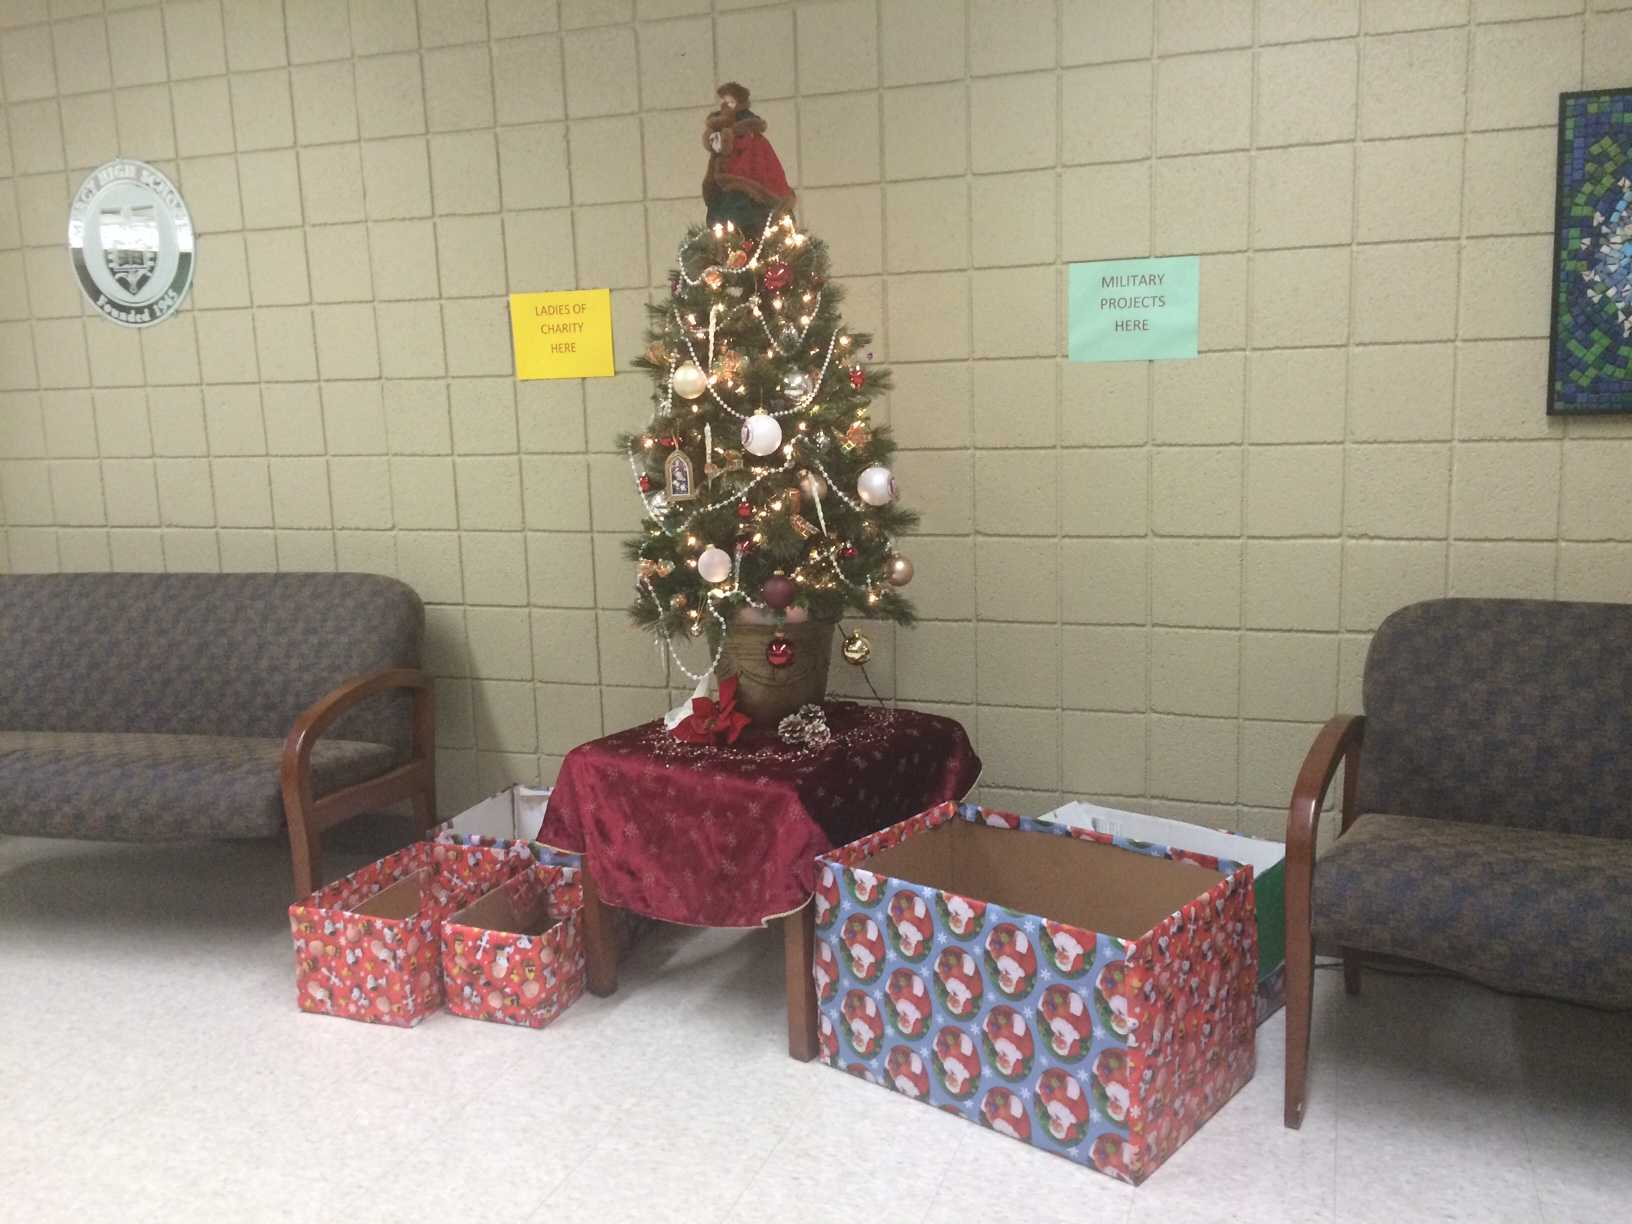 Donations for soldiers are being collected under the Christmas tree until Dec. 8. (Photo credit: Chanel Taylor)